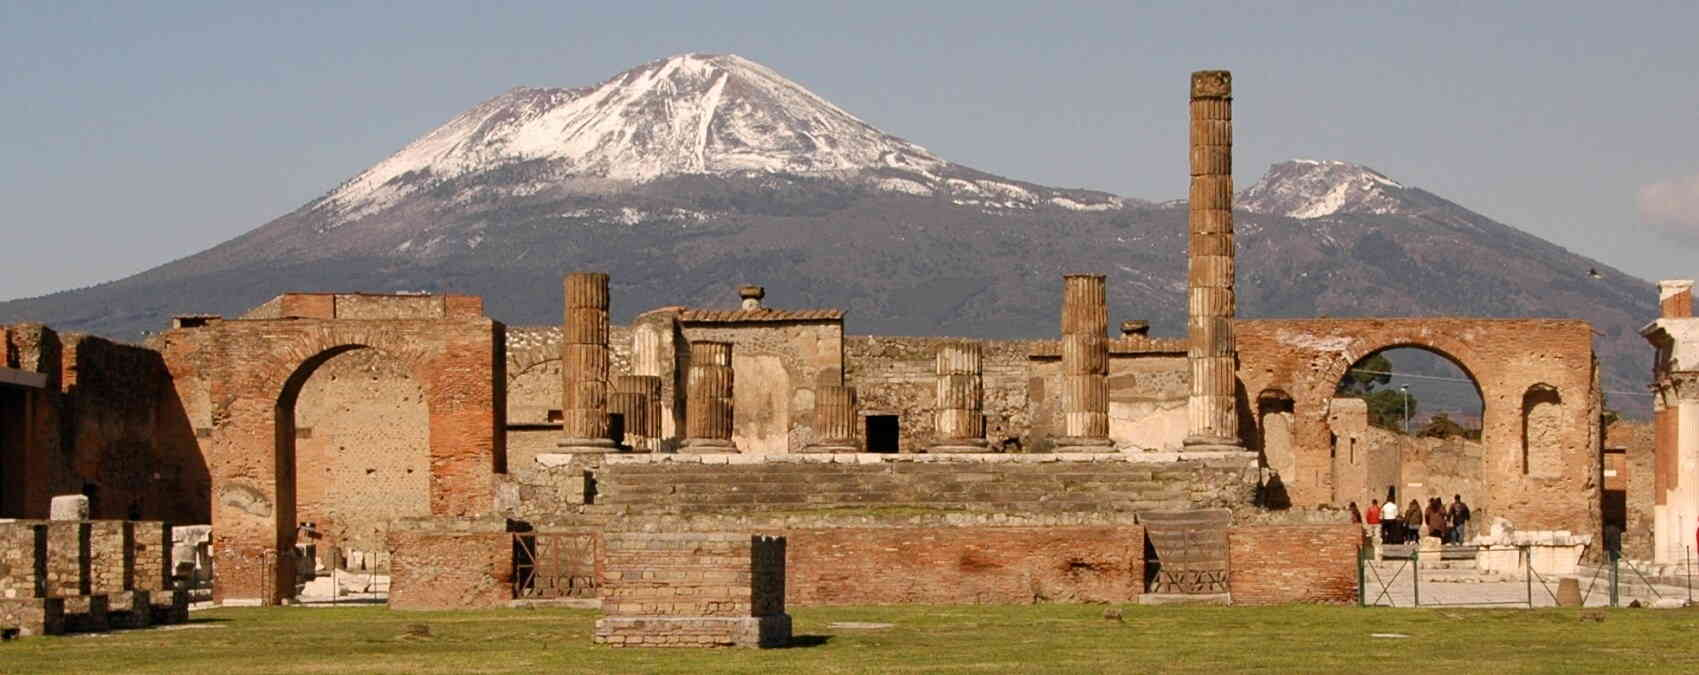 Who were the slaves of Pompeii?